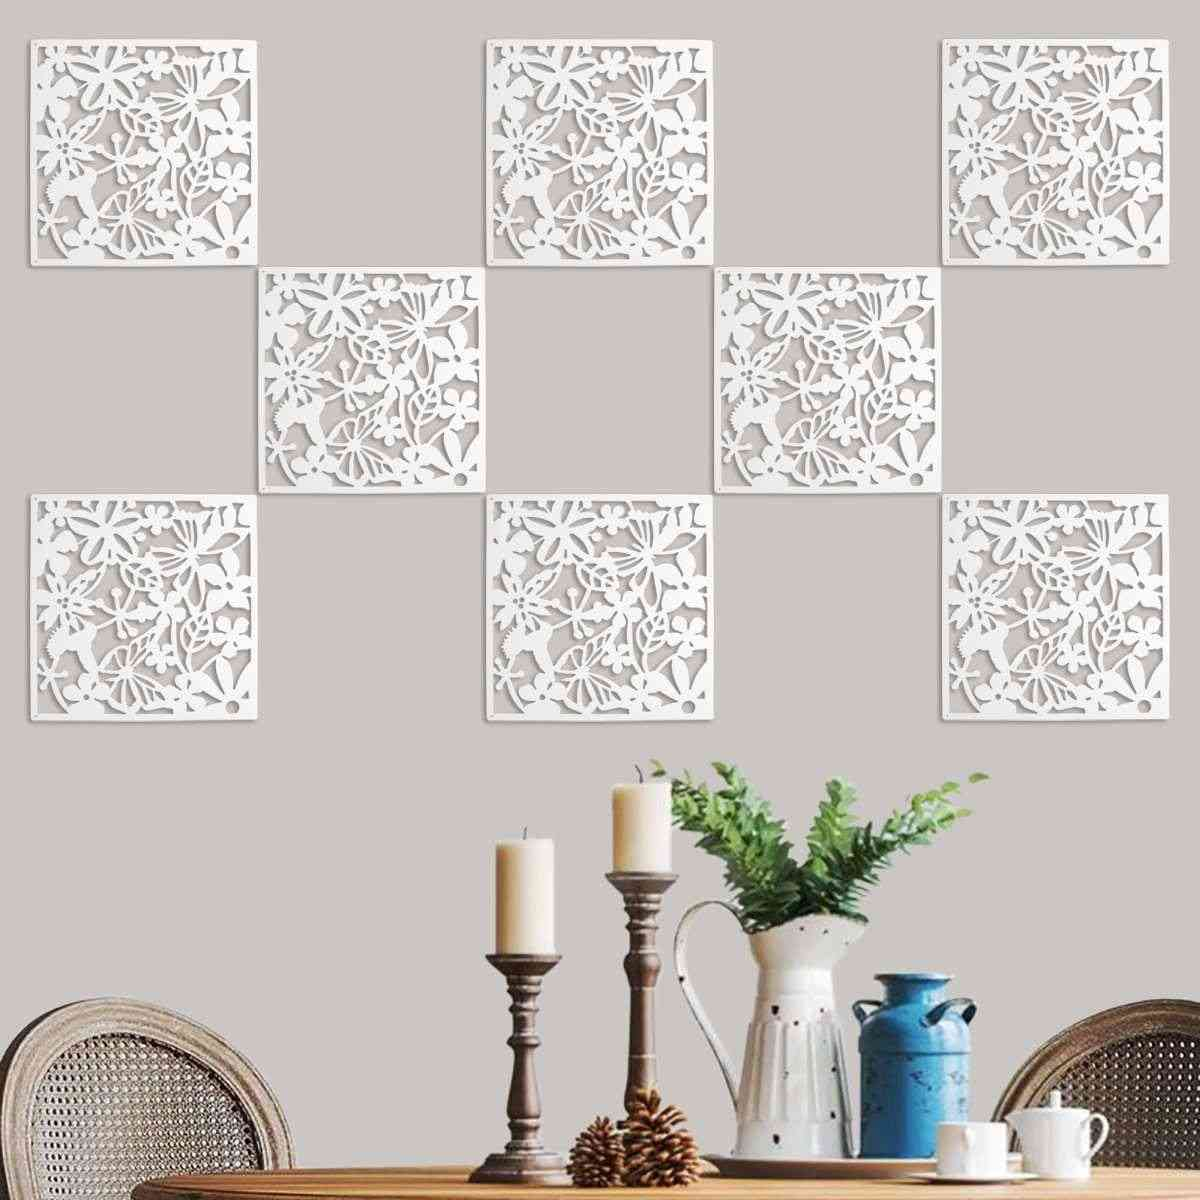 12 Pcs Butterfly Bird Flower Hanging Screen Partition Divider Panel Room, Curtain